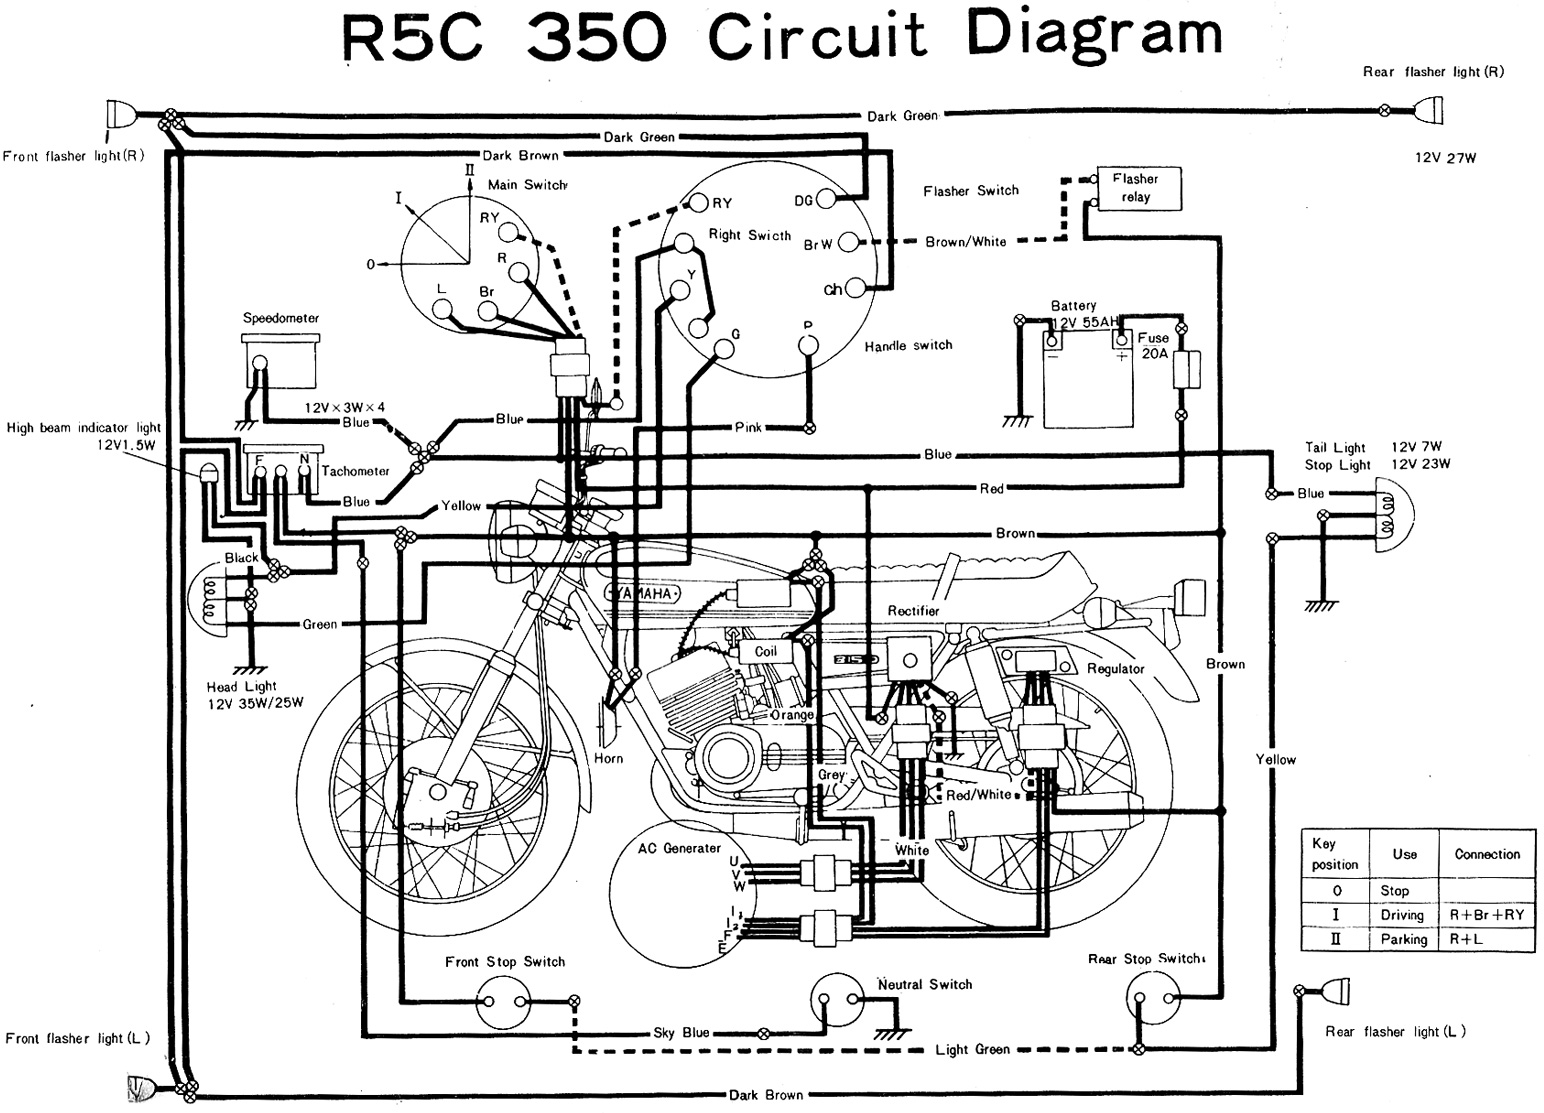 Yamaha RD350 R5C Wiring Diagram yamaha rd350 r5c wiring diagram evan fell motorcycle worksevan yamaha wiring diagram at edmiracle.co